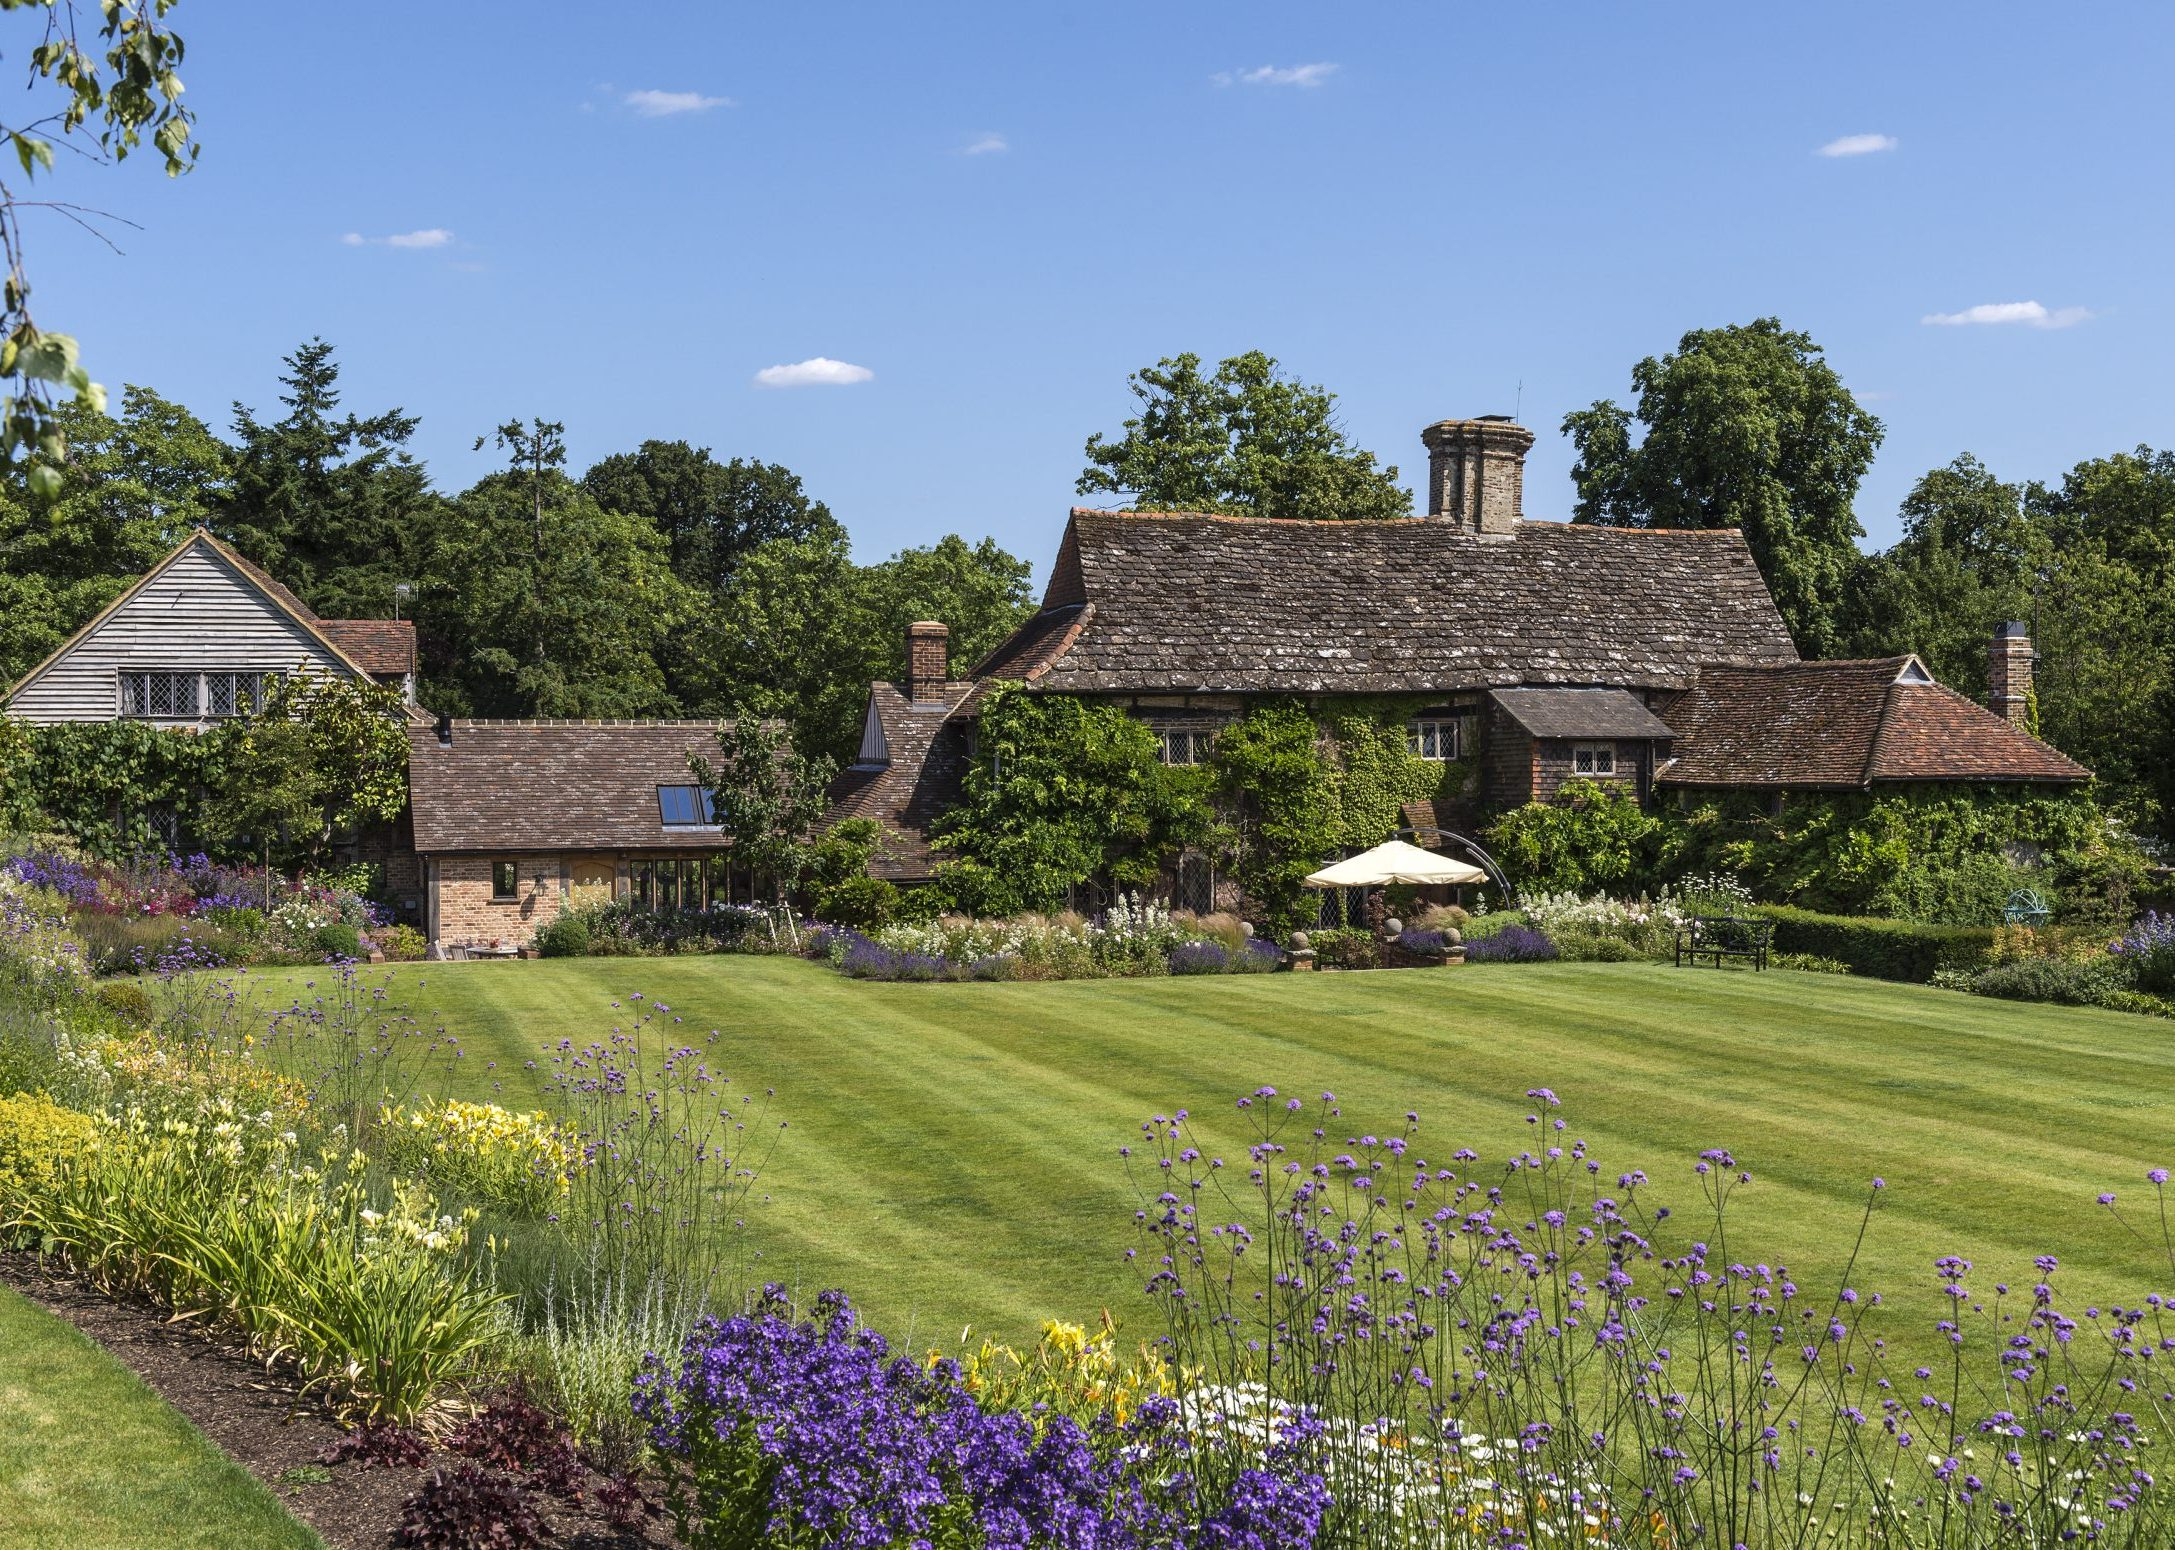 A picture-perfect Elizabethan country house once owned by the impresario who created Bucks Fizz